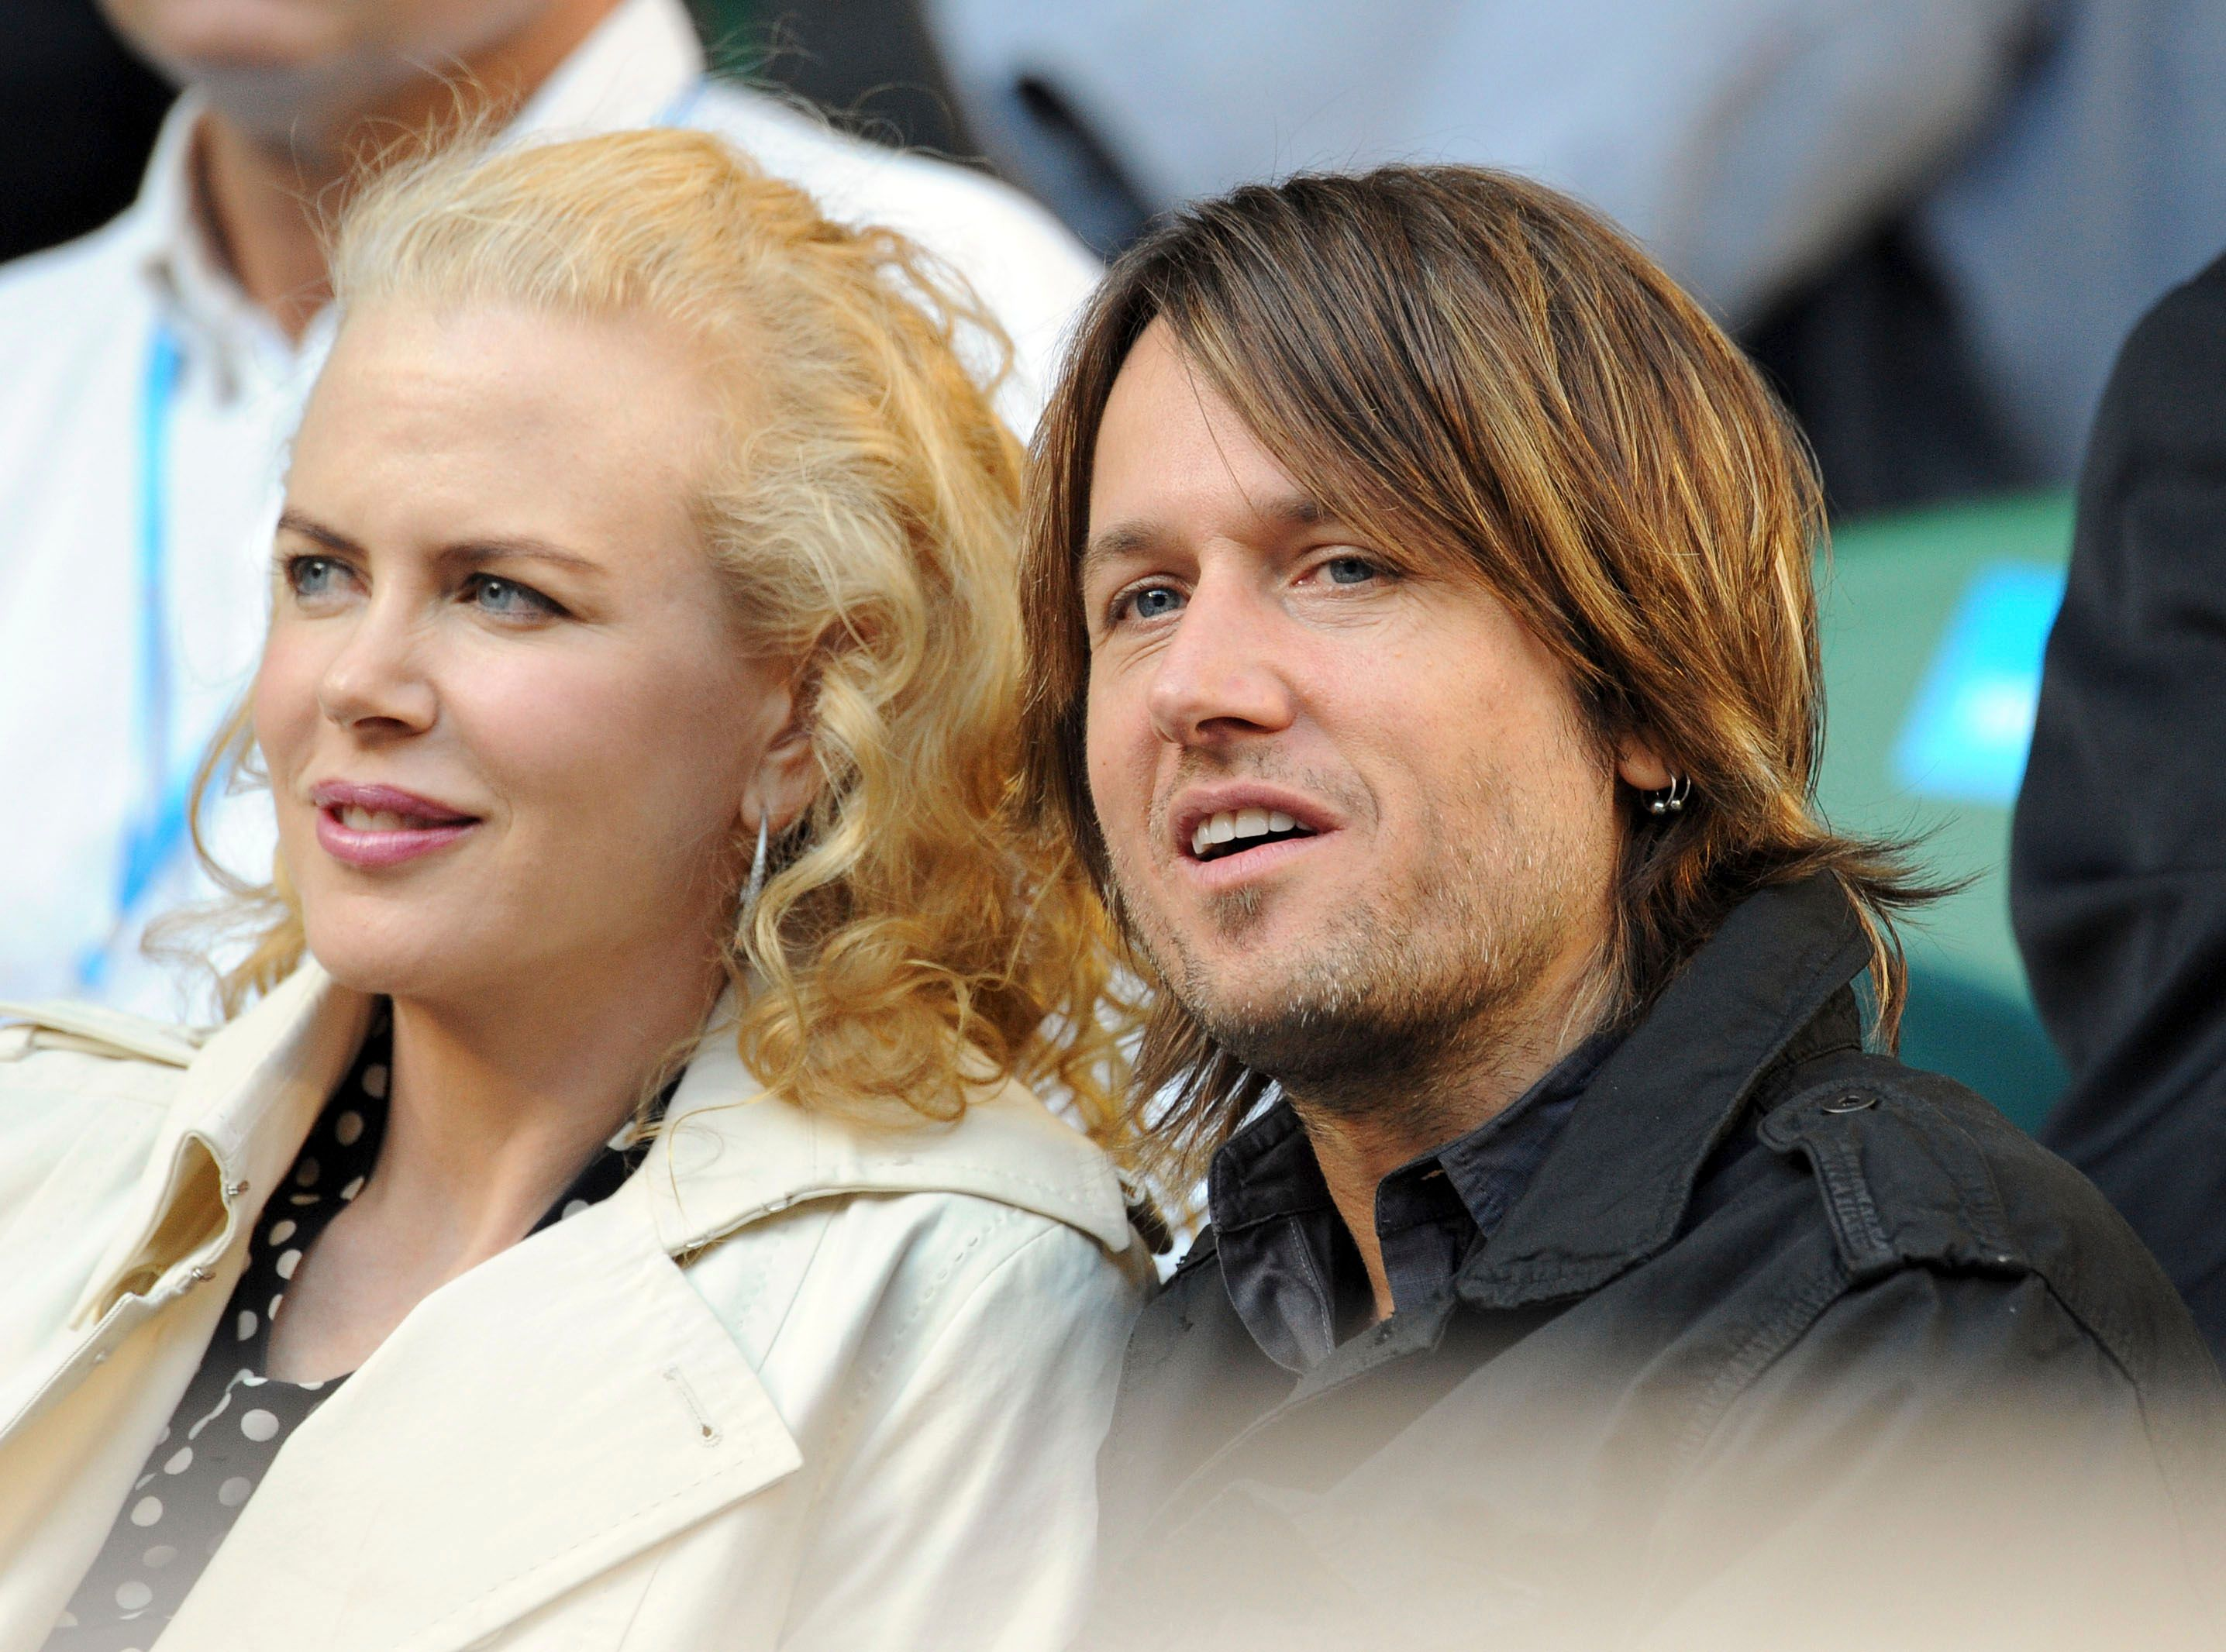 Nicole Kidman and Keith Urban during the Australian Open at Melbourne Park on January 21, 2008 in Melbourne, Australia. | Source: Getty Images